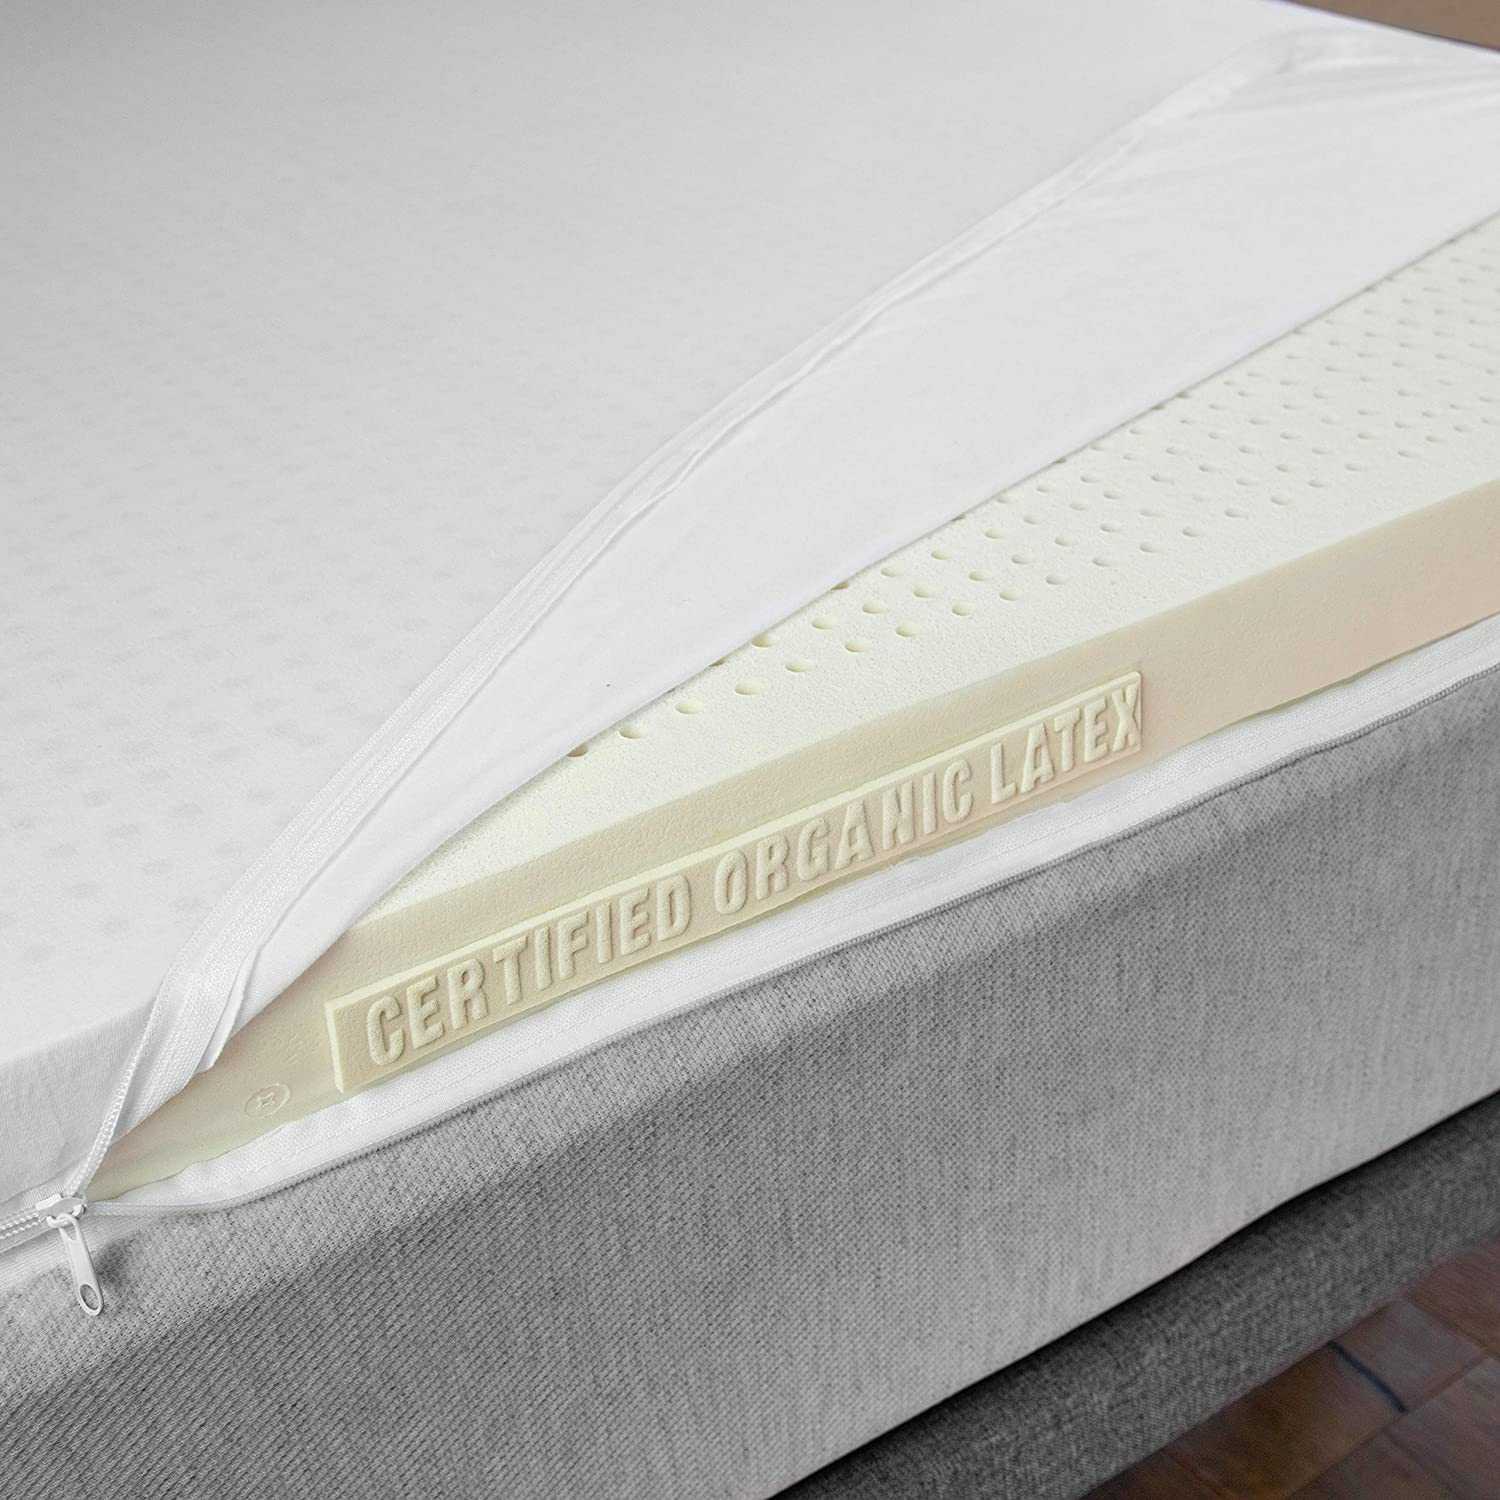 Certified Organic 100 Natural Latex Mattress Topper – Firm – 3 Inch – King Size – Organic Cotton Cover Included.